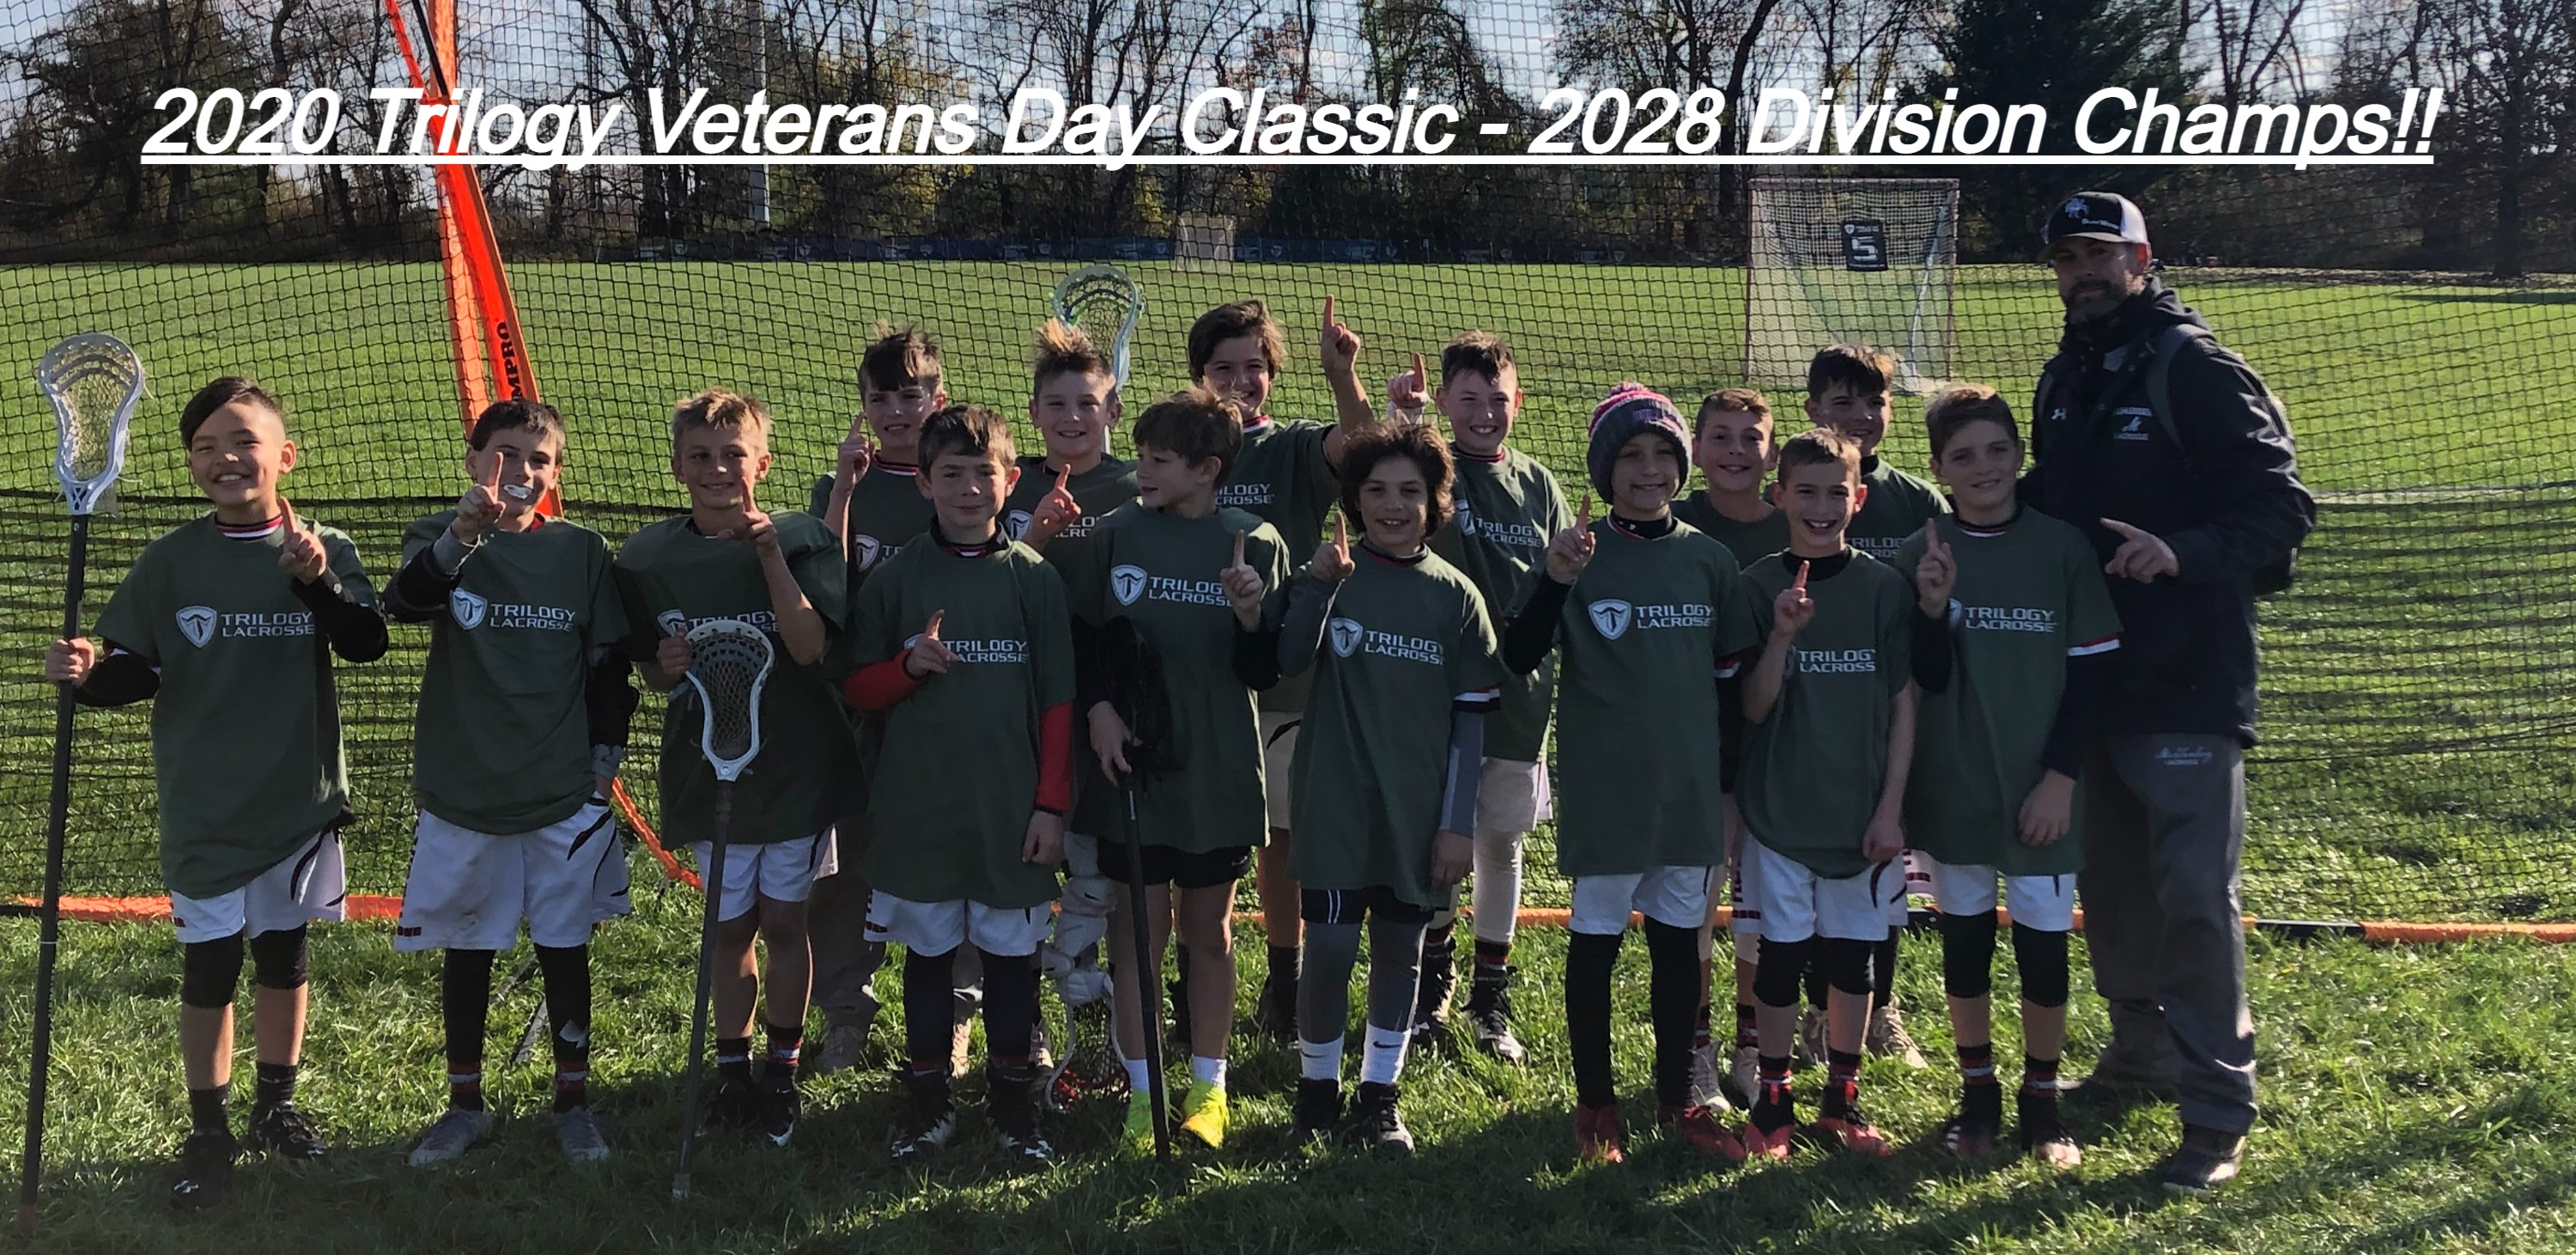 Trilogy's 2020 Veterans Day Classic